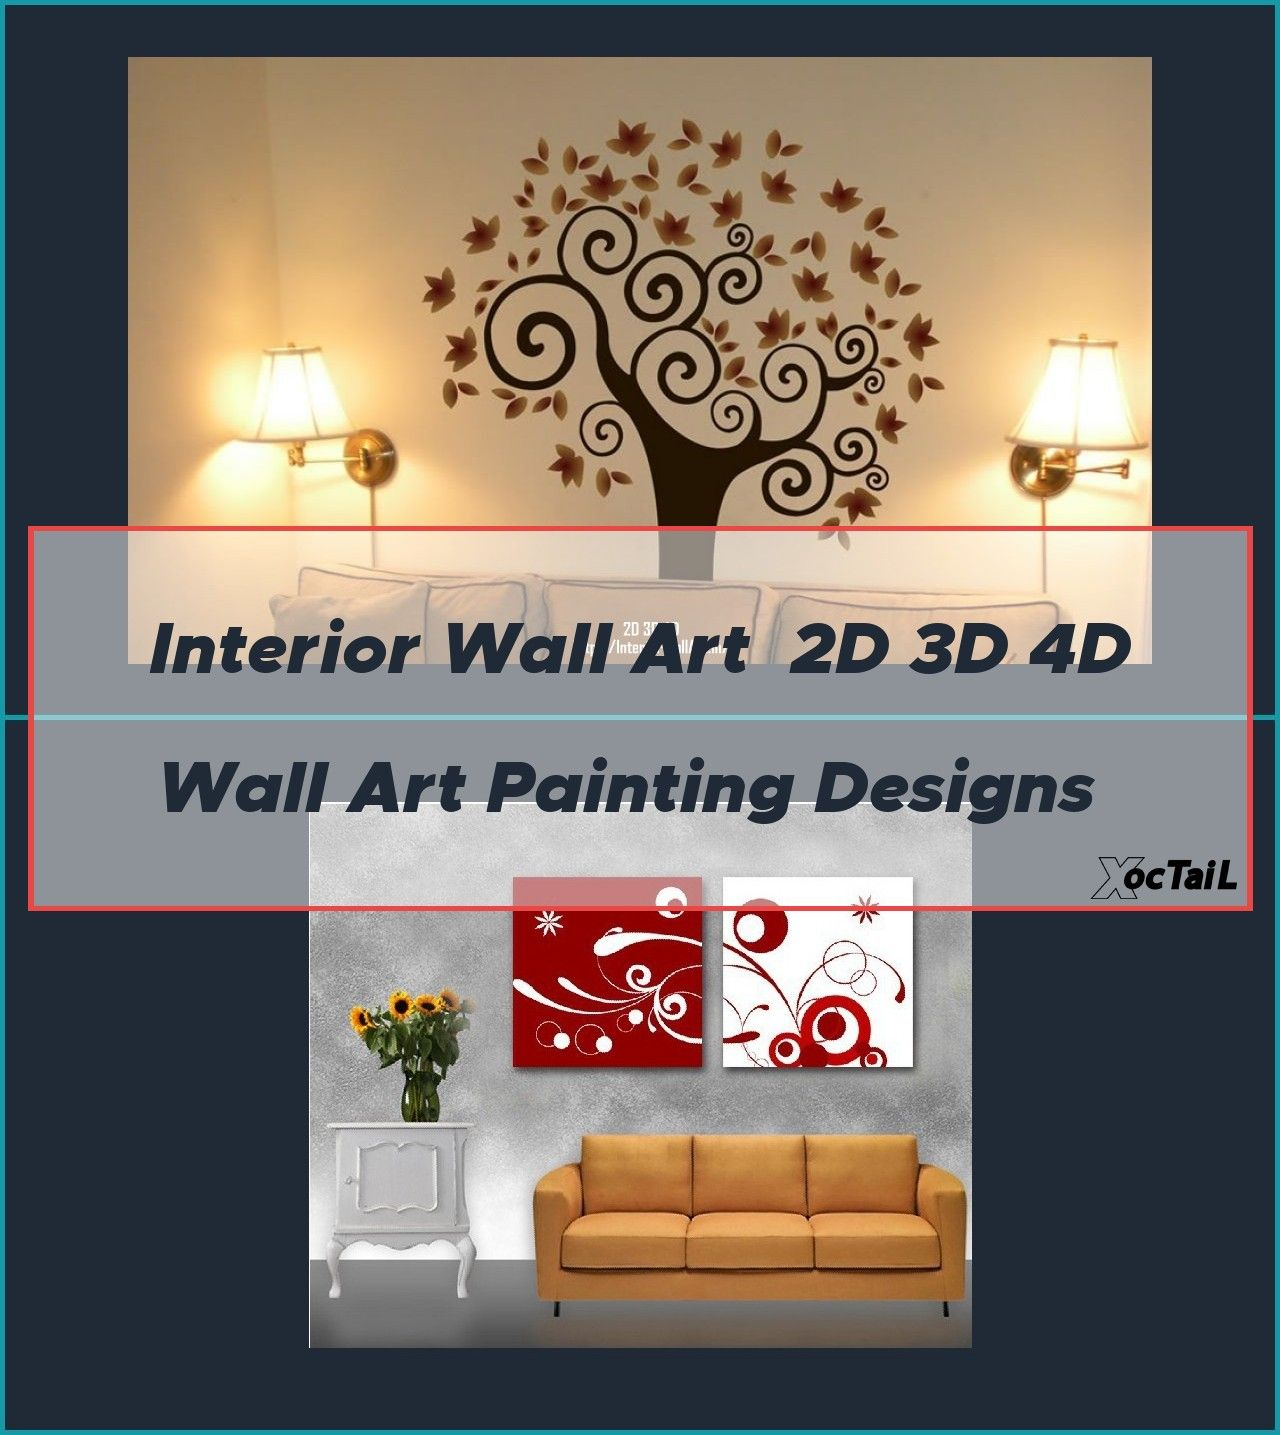 Interior Wall Art 2d 3d 4d Wall Art Painting Designs Wall Paintings Simple Room Living Abst In 2020 Simple Wall Paintings Creative Wall Painting Wall Paint Designs